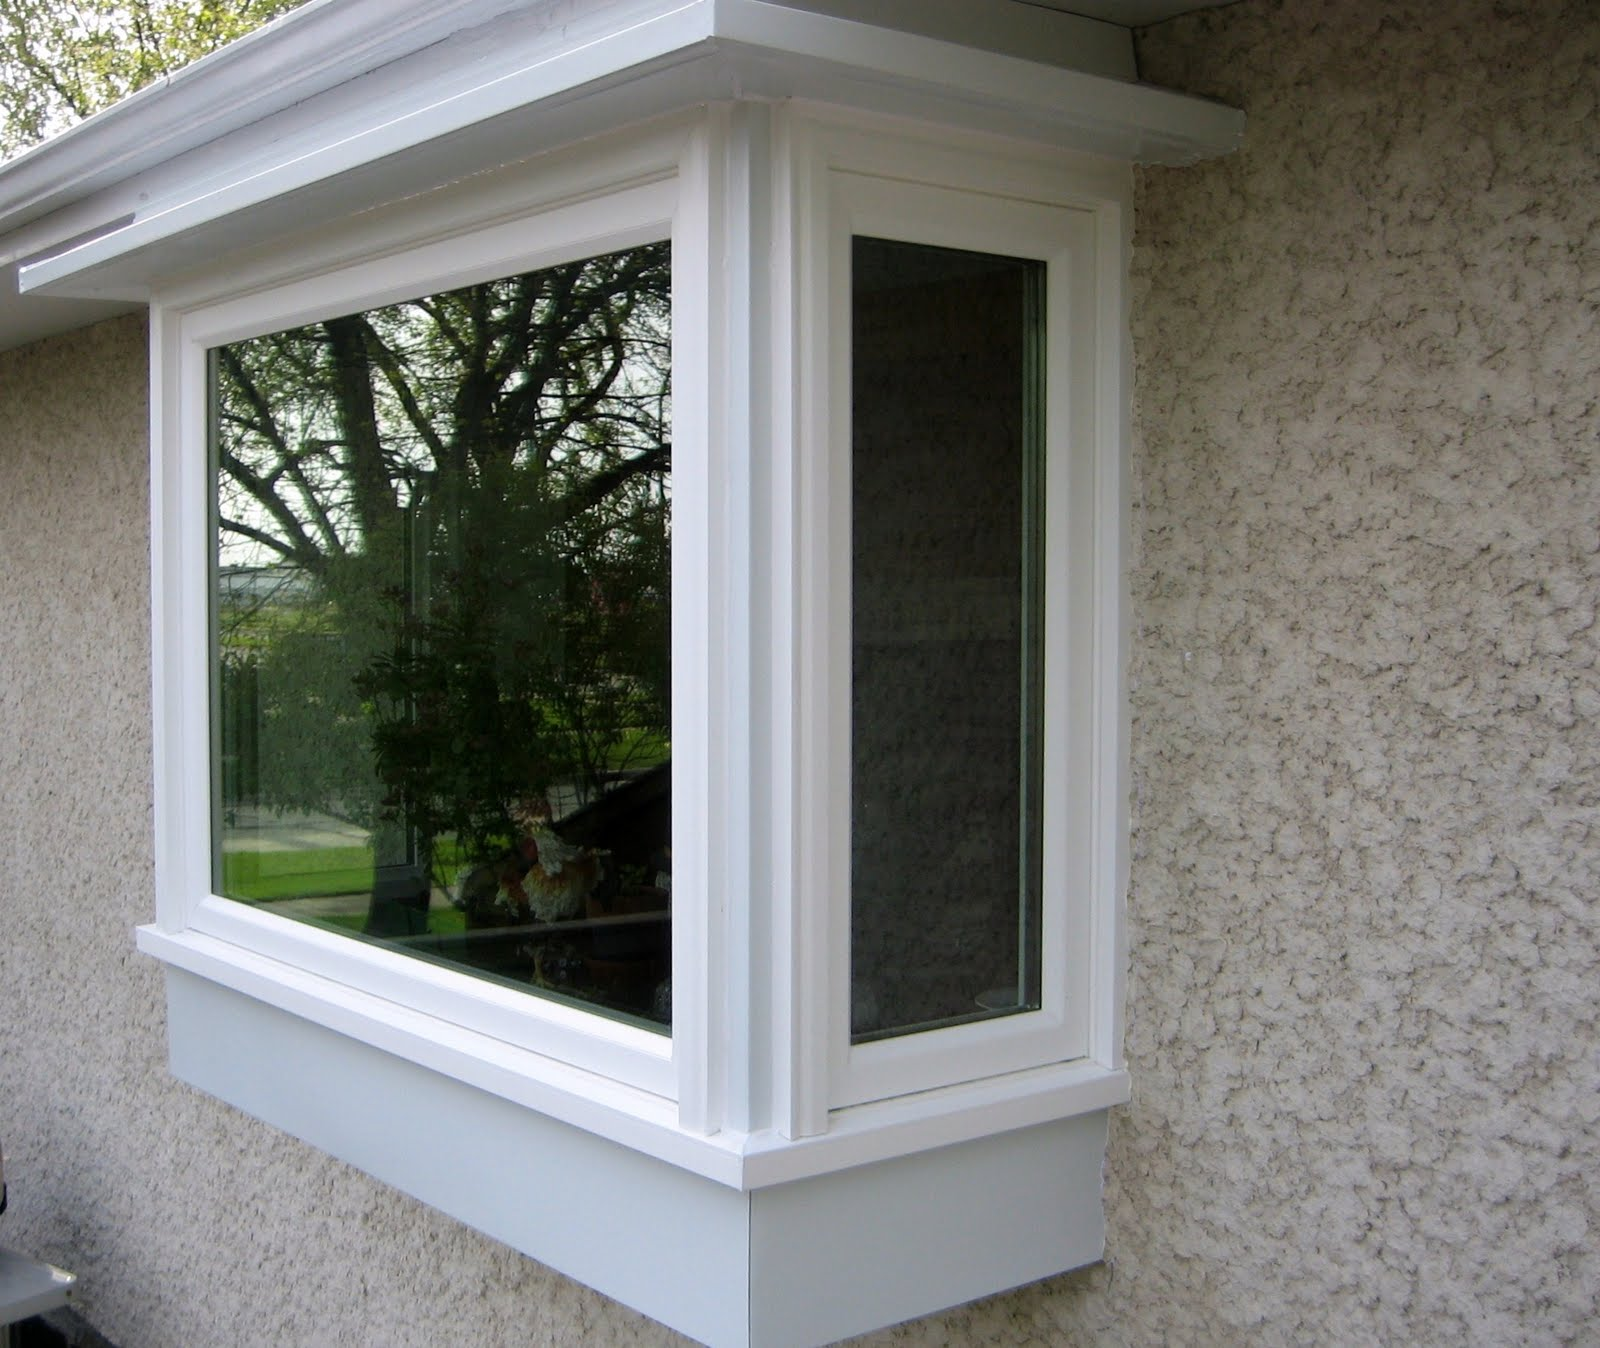 Box bay window winchester pinterest bay windows and bays for Box bay window